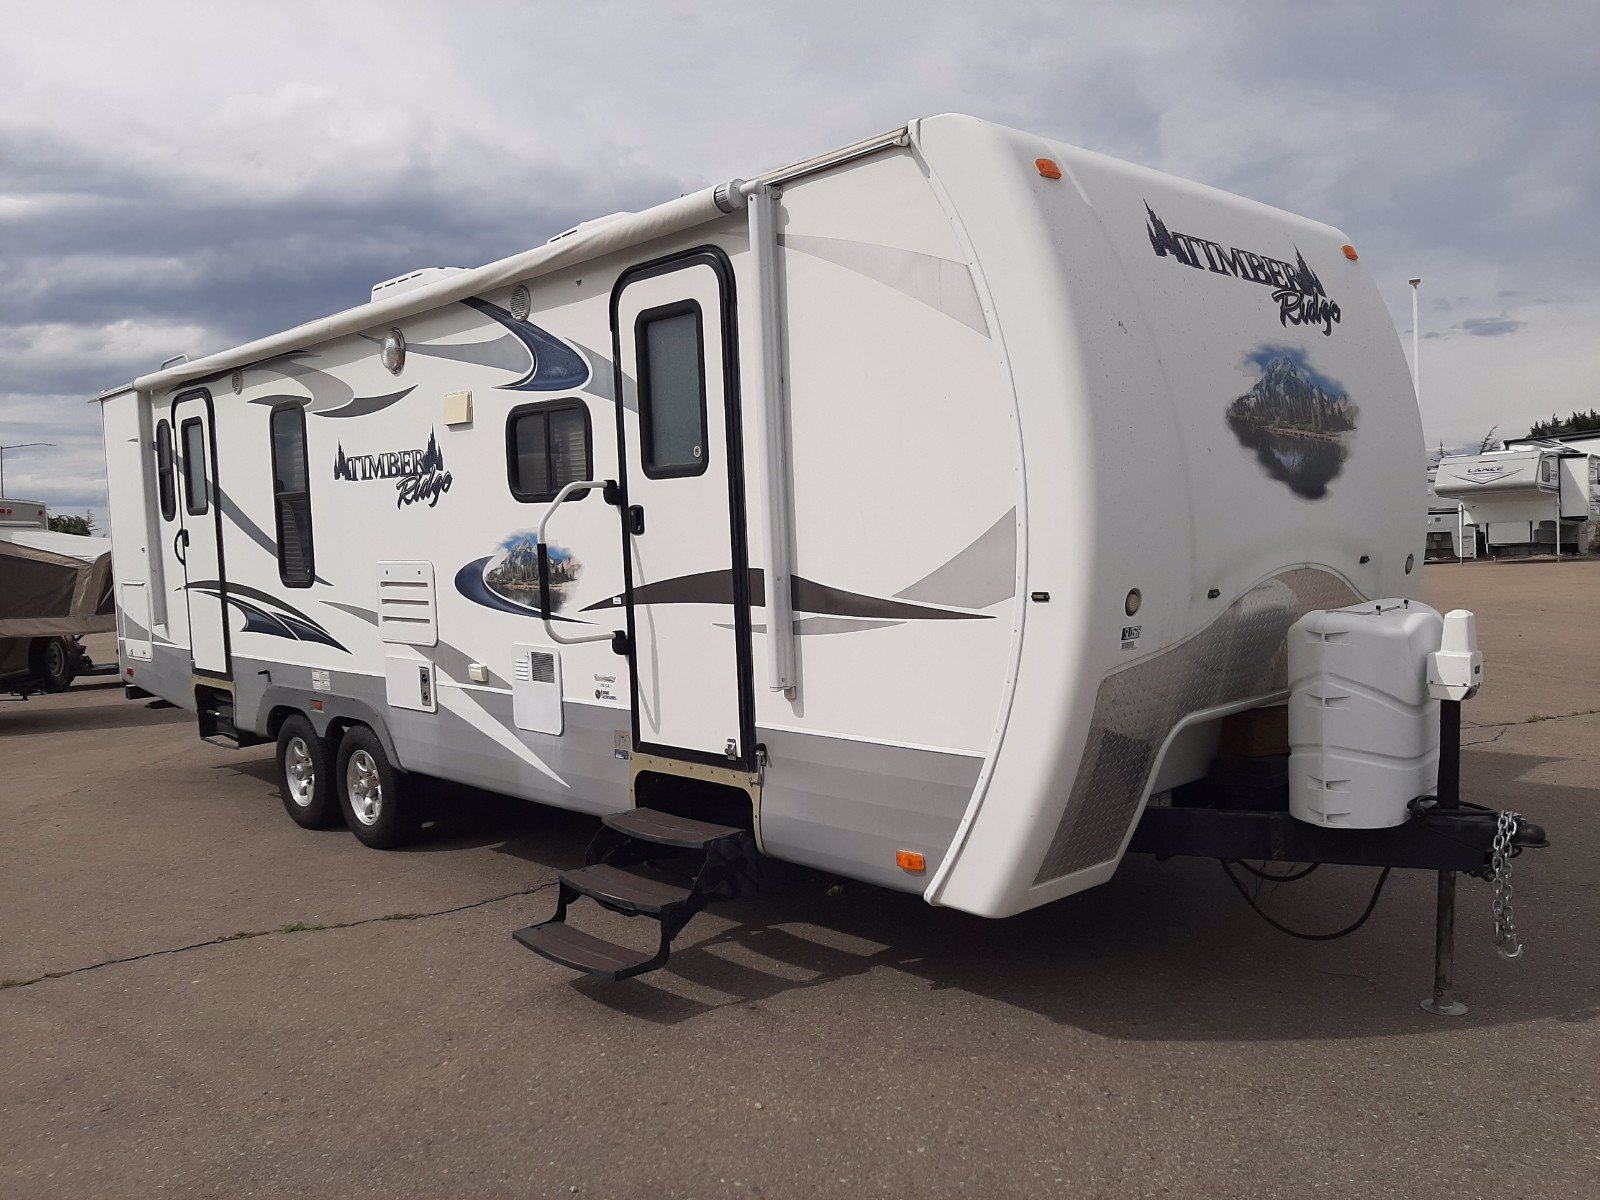 Pre-Owned 2012 OUTDOORS RV TIMBER RIDGE 250RLS